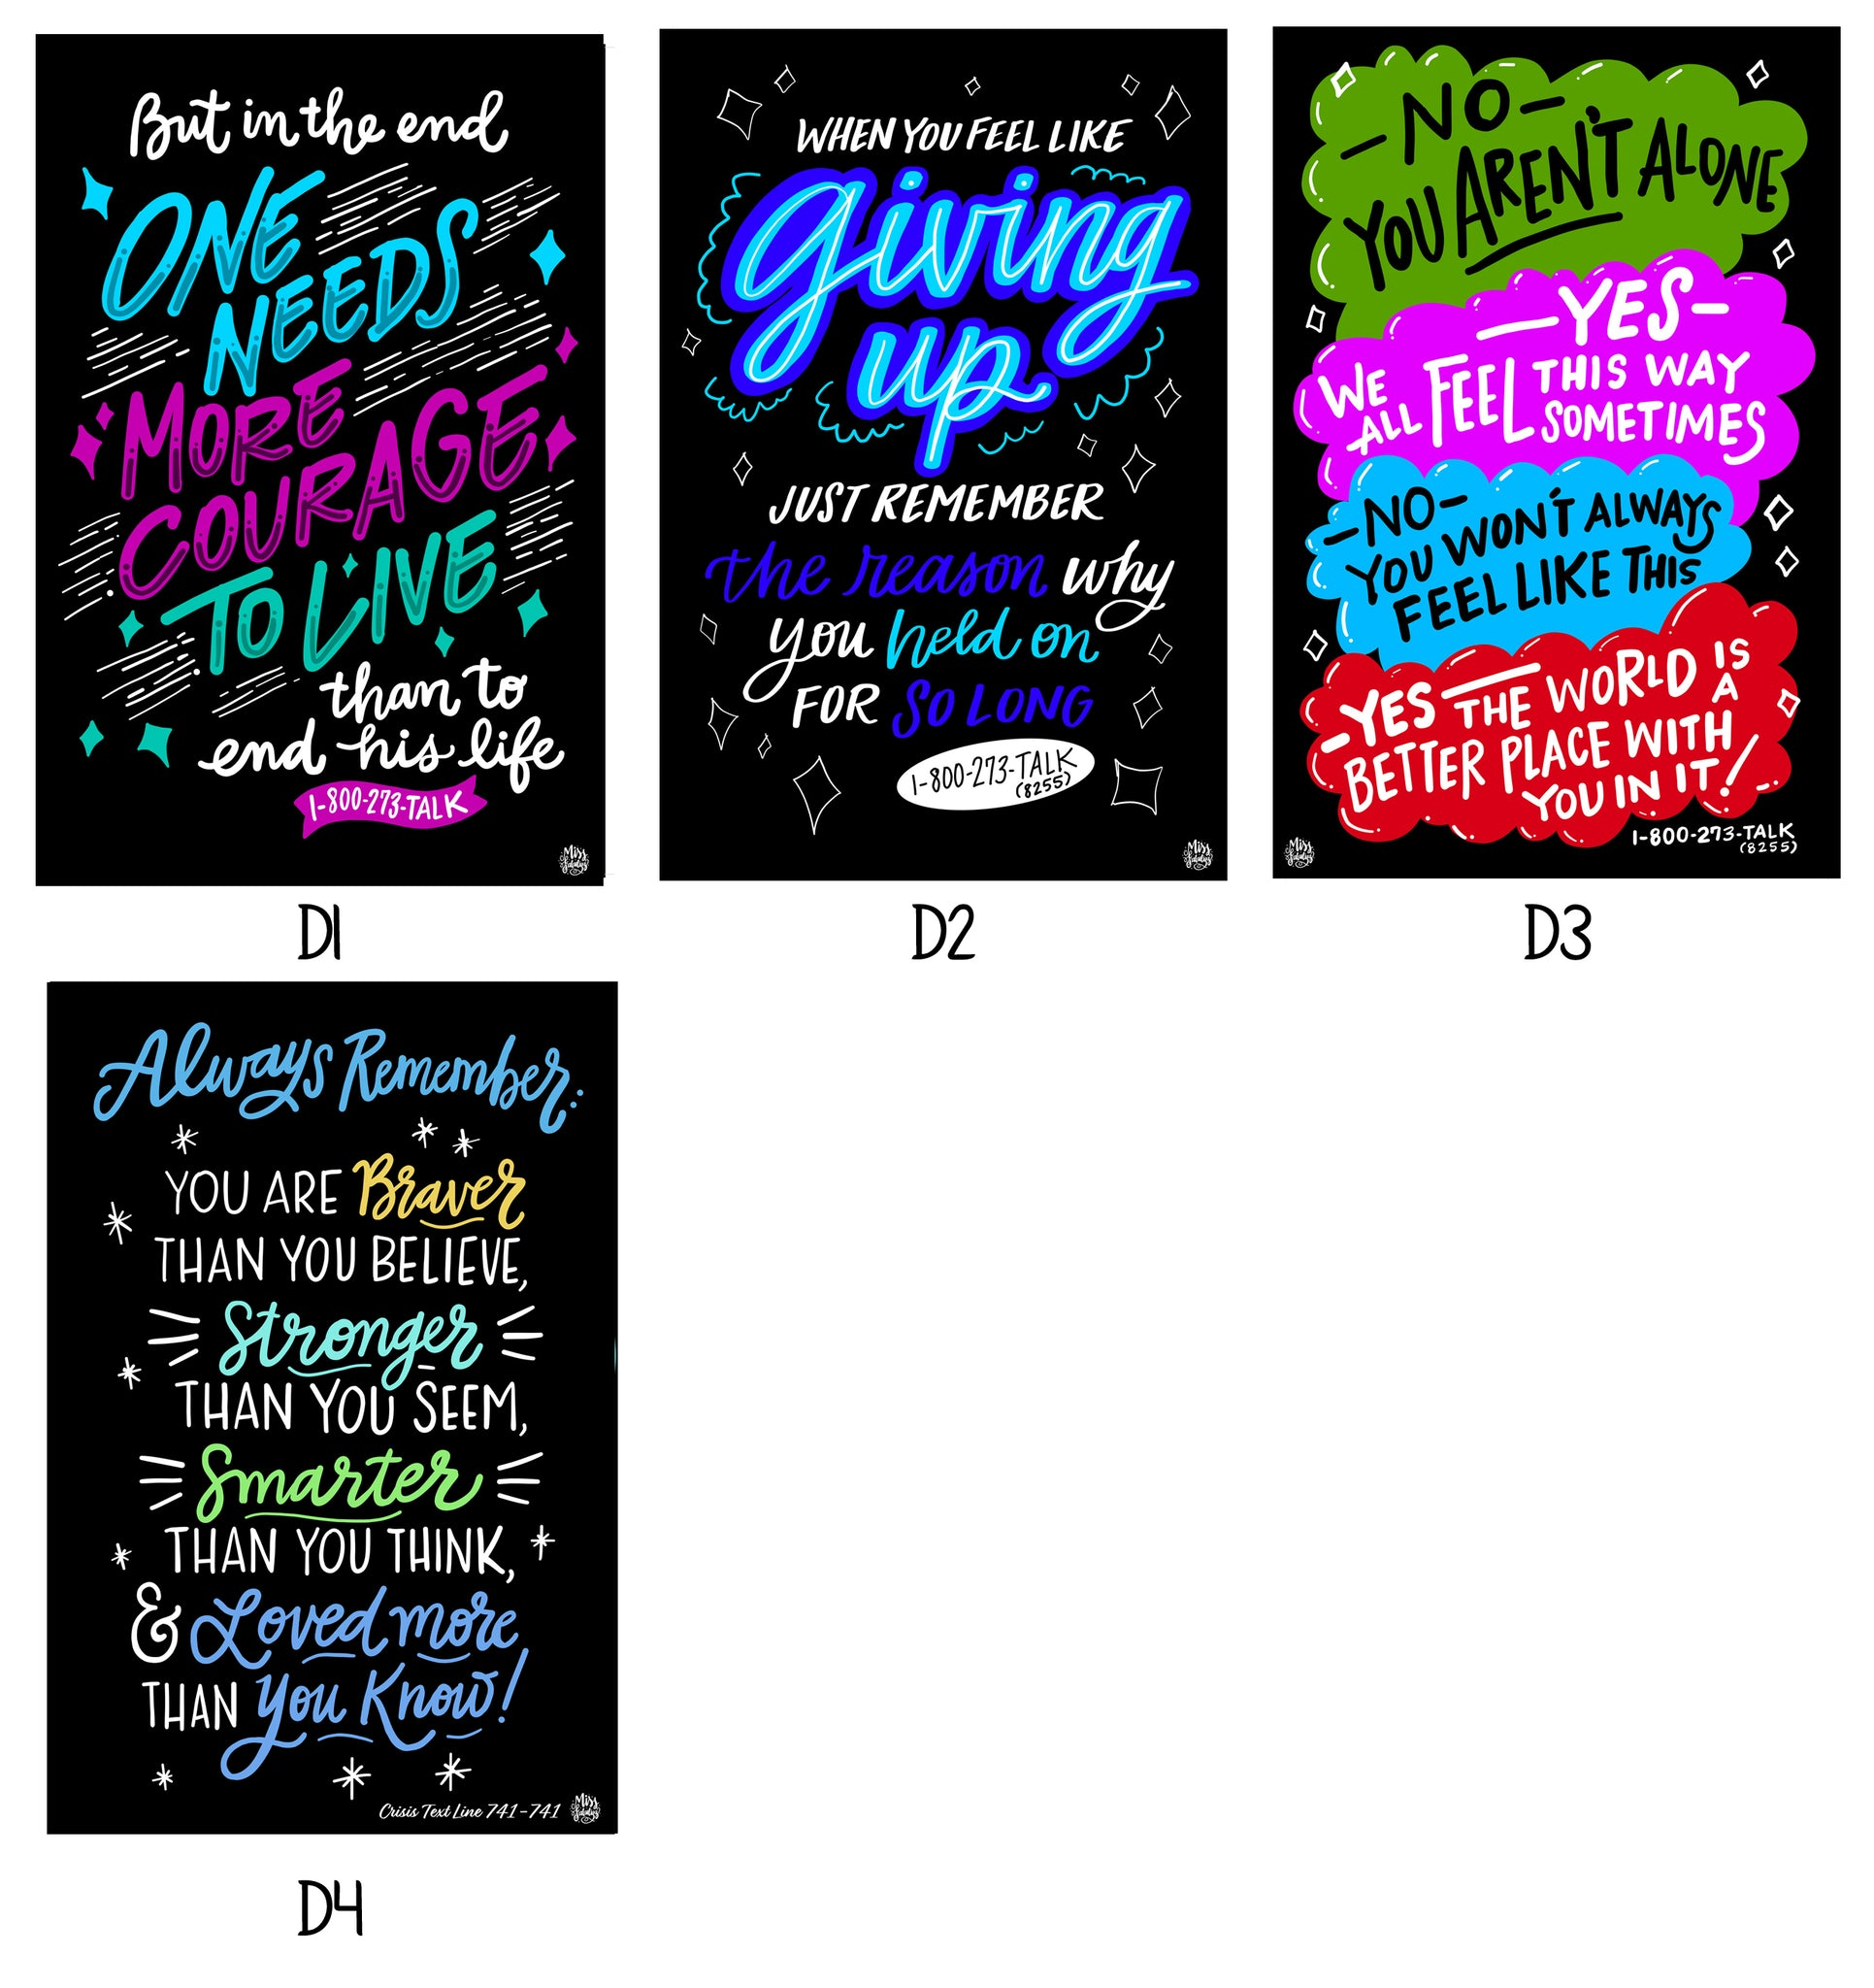 Suicide Prevention - Single Decals | Build Your Own Collection D